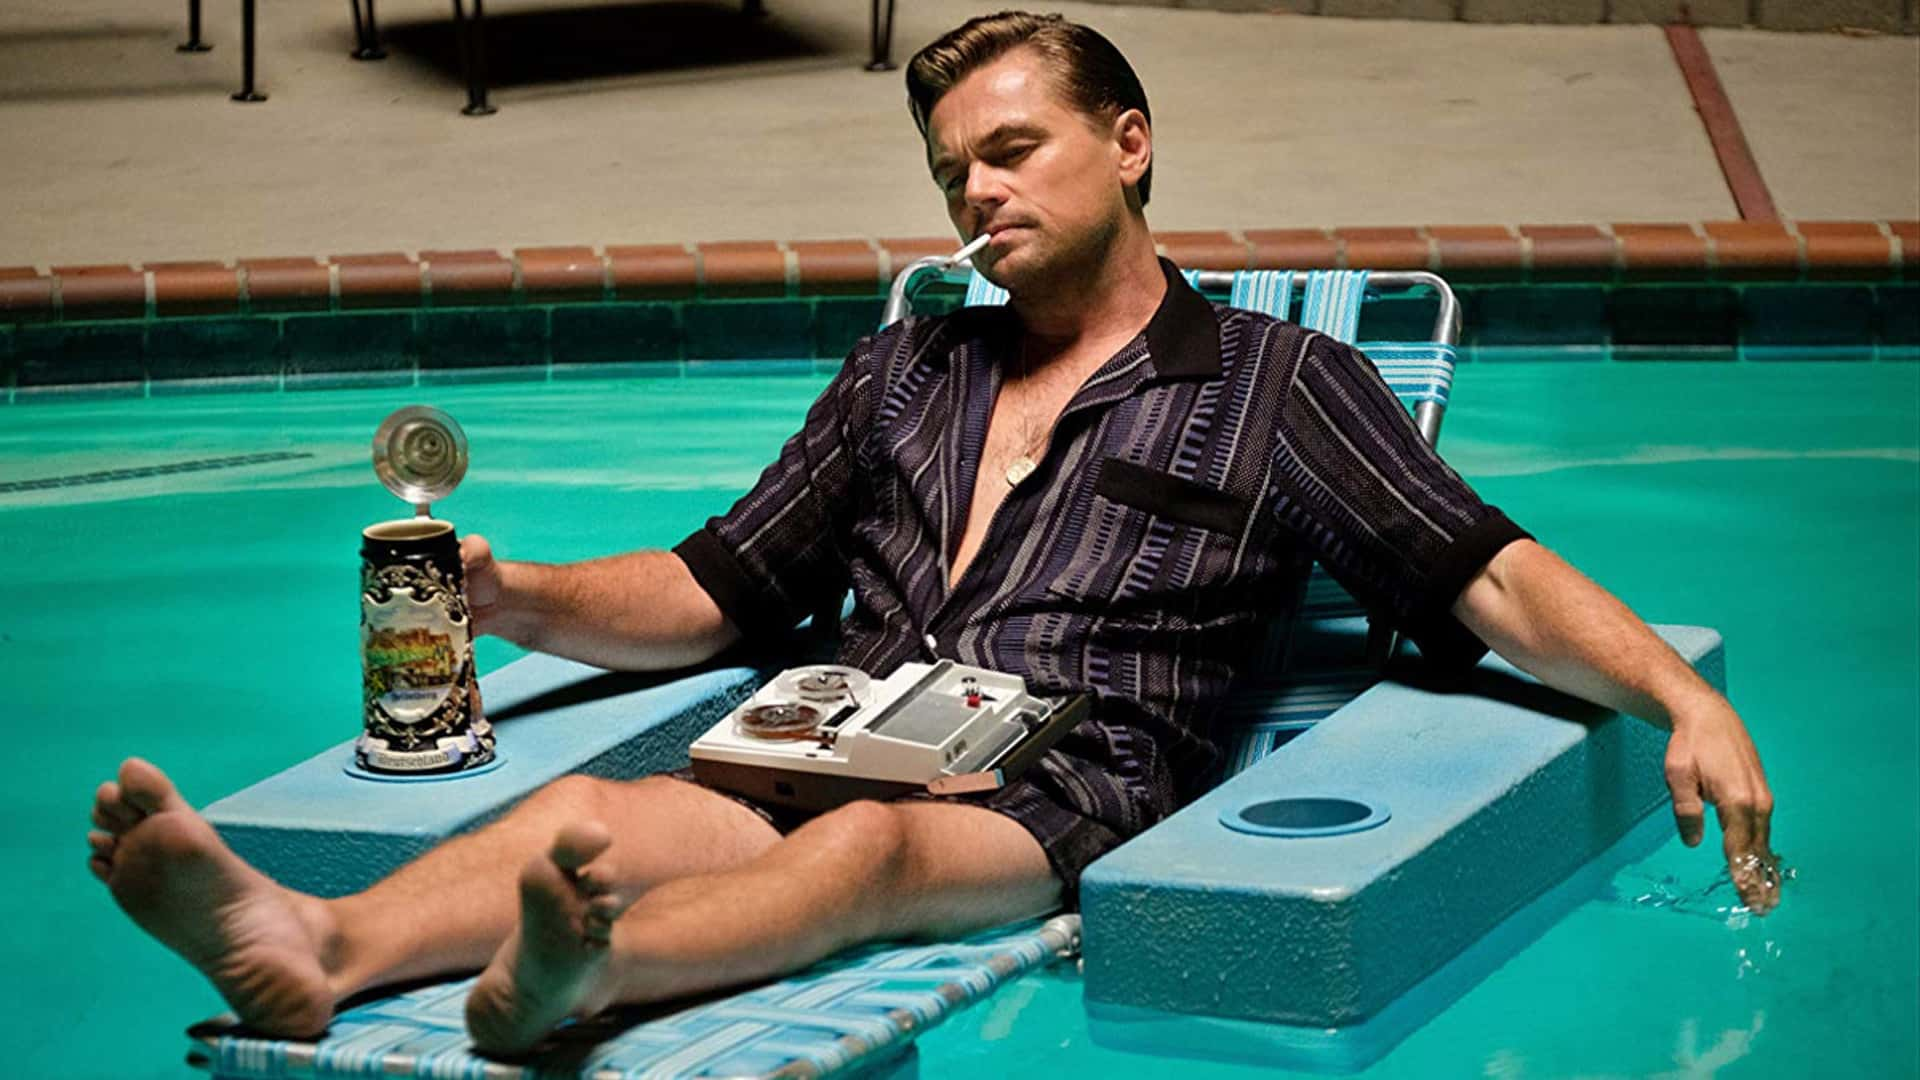 Leonardo DiCaprio is sitting in a floating lawn chair in a pool as he smokes a cigarette, listens to a tape player, and drinks from a large stein.